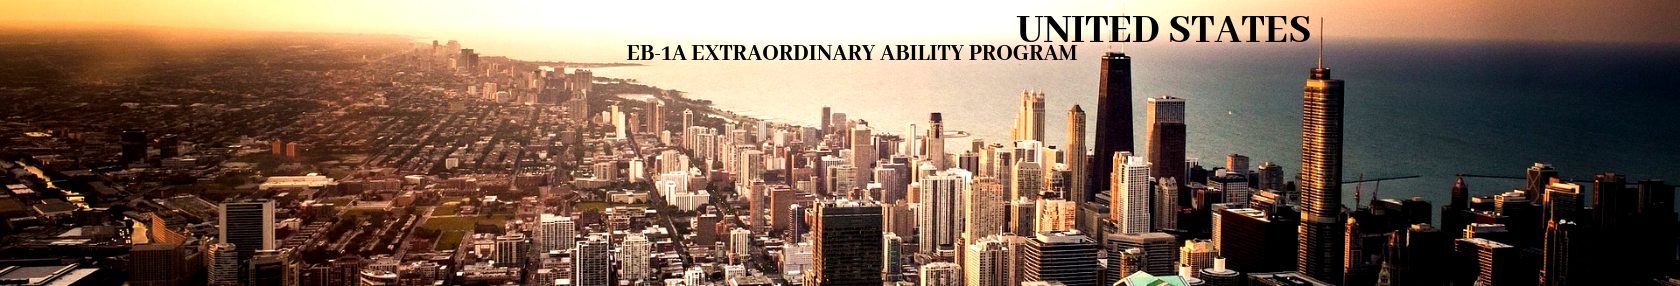 United States, EB-1A Extraordinary Ability